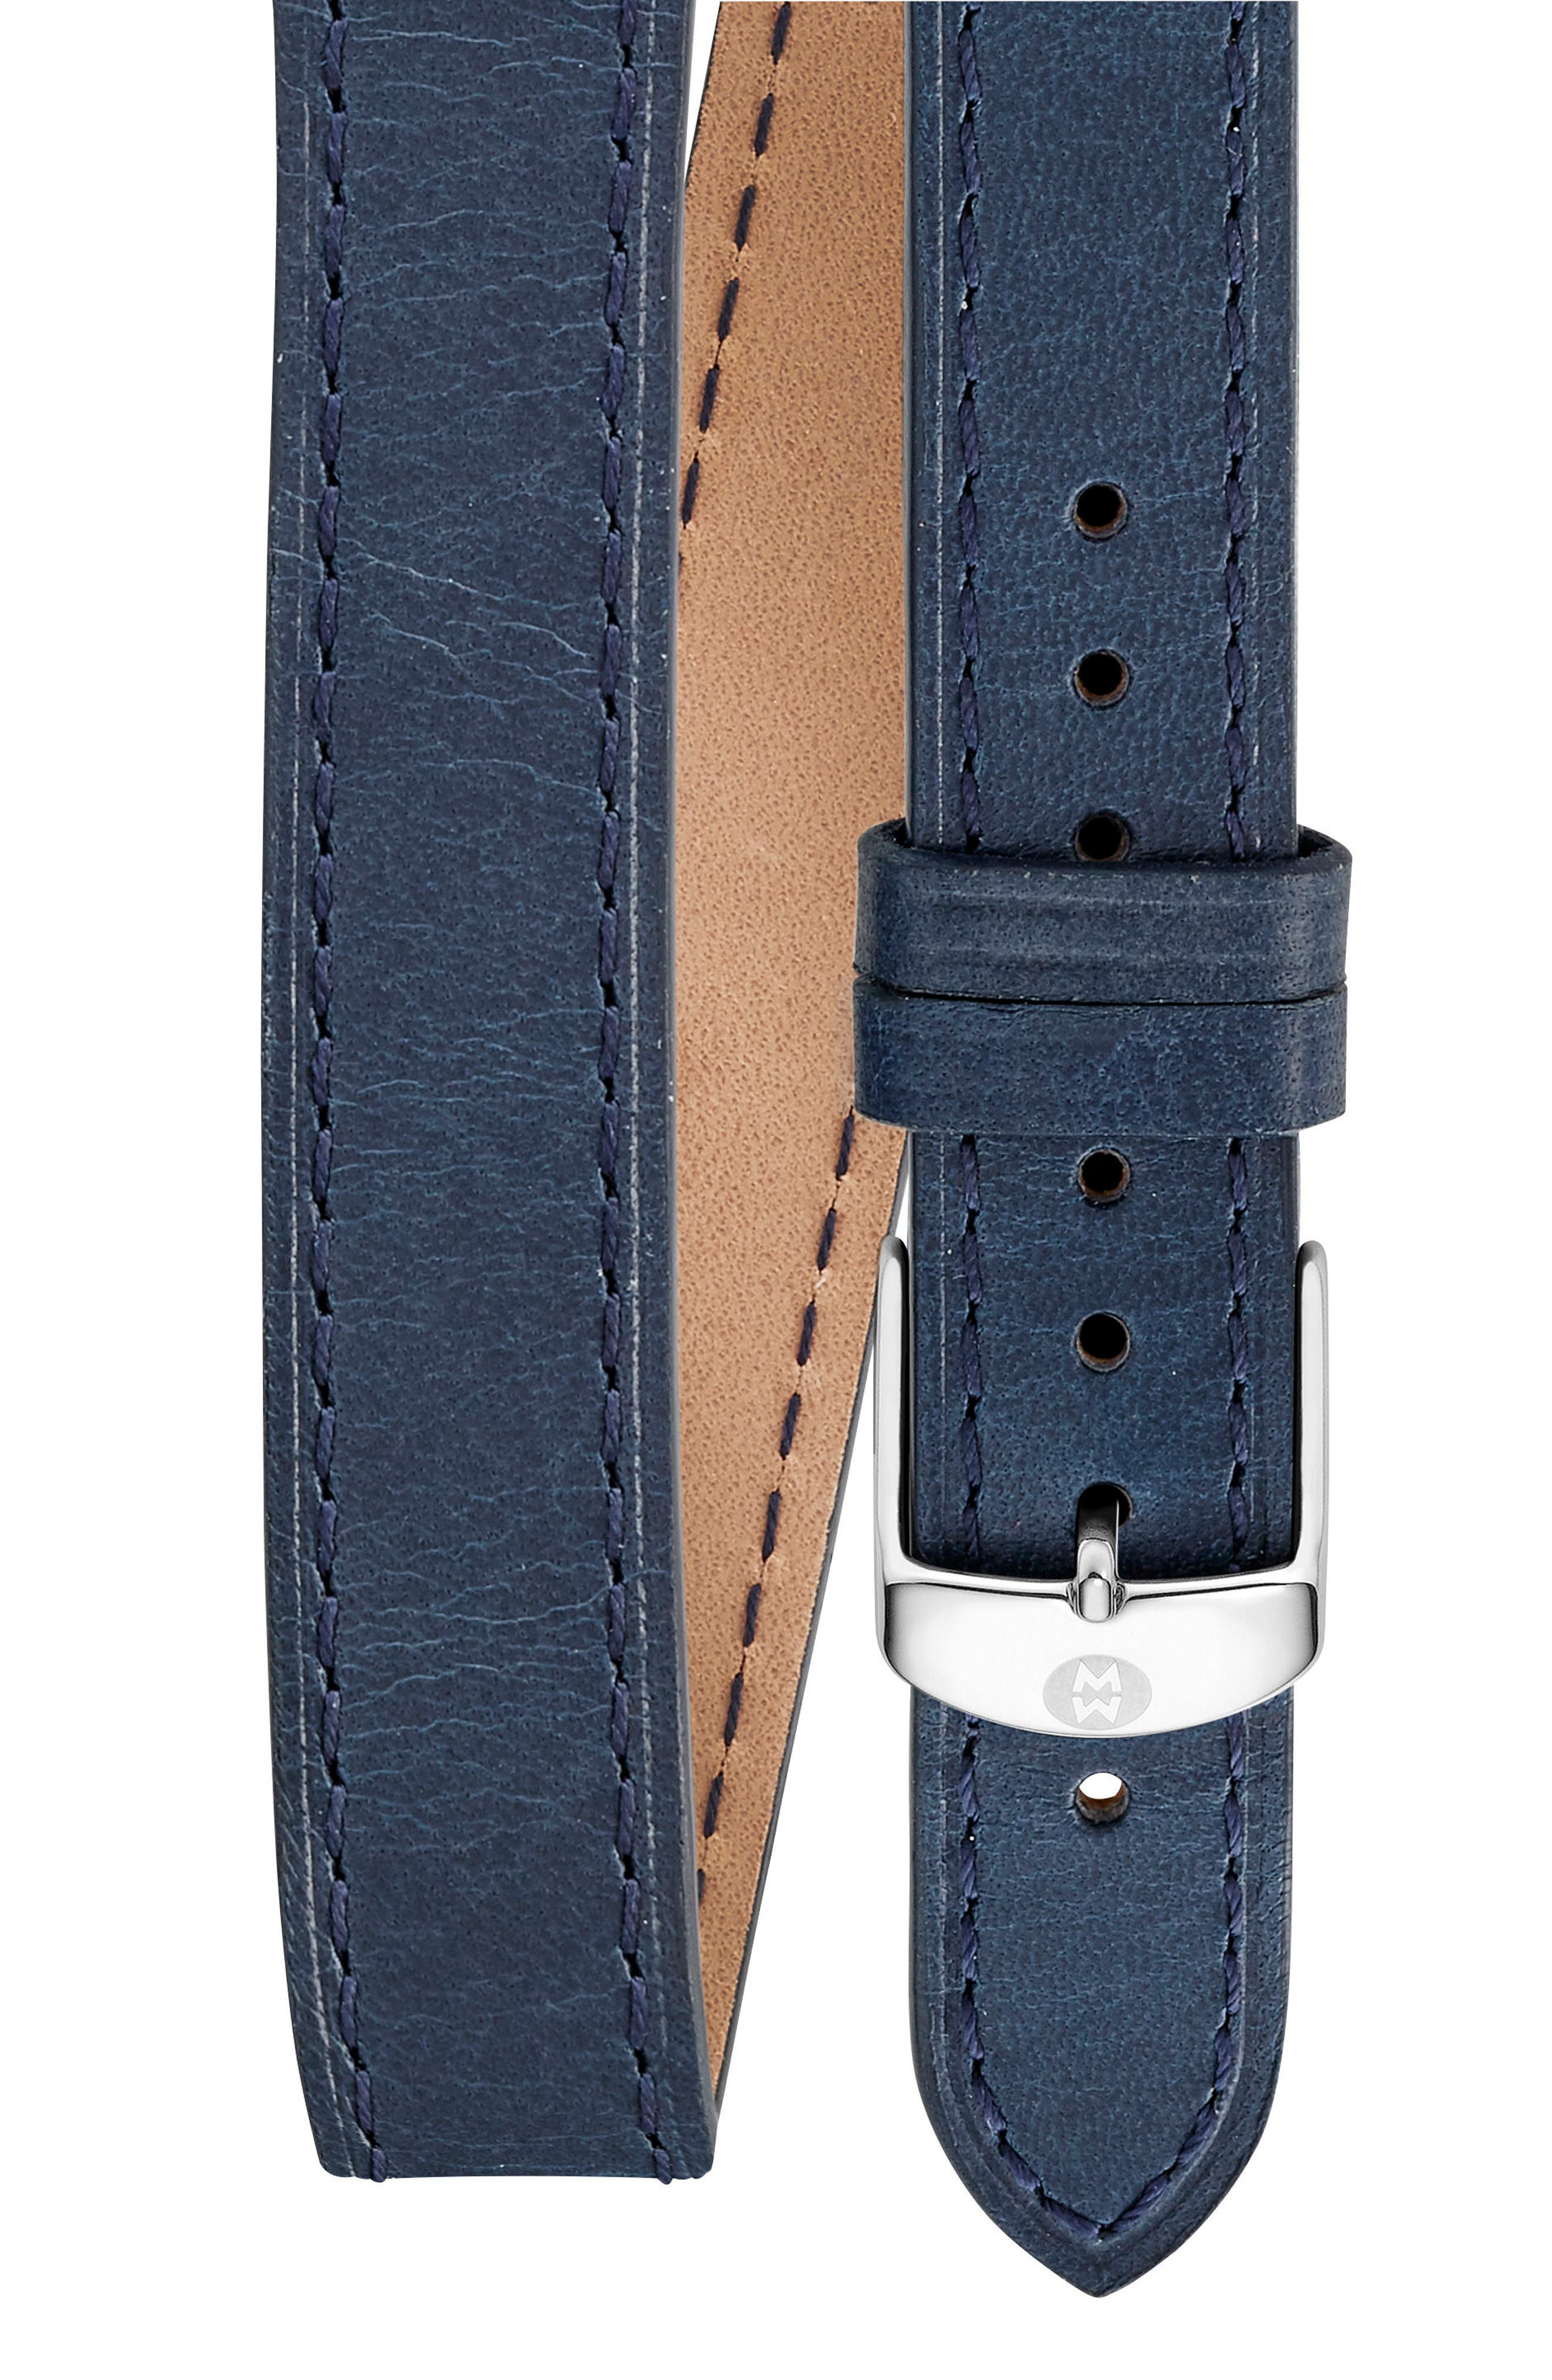 Main Image - MICHELE 16mm Leather Watch Strap